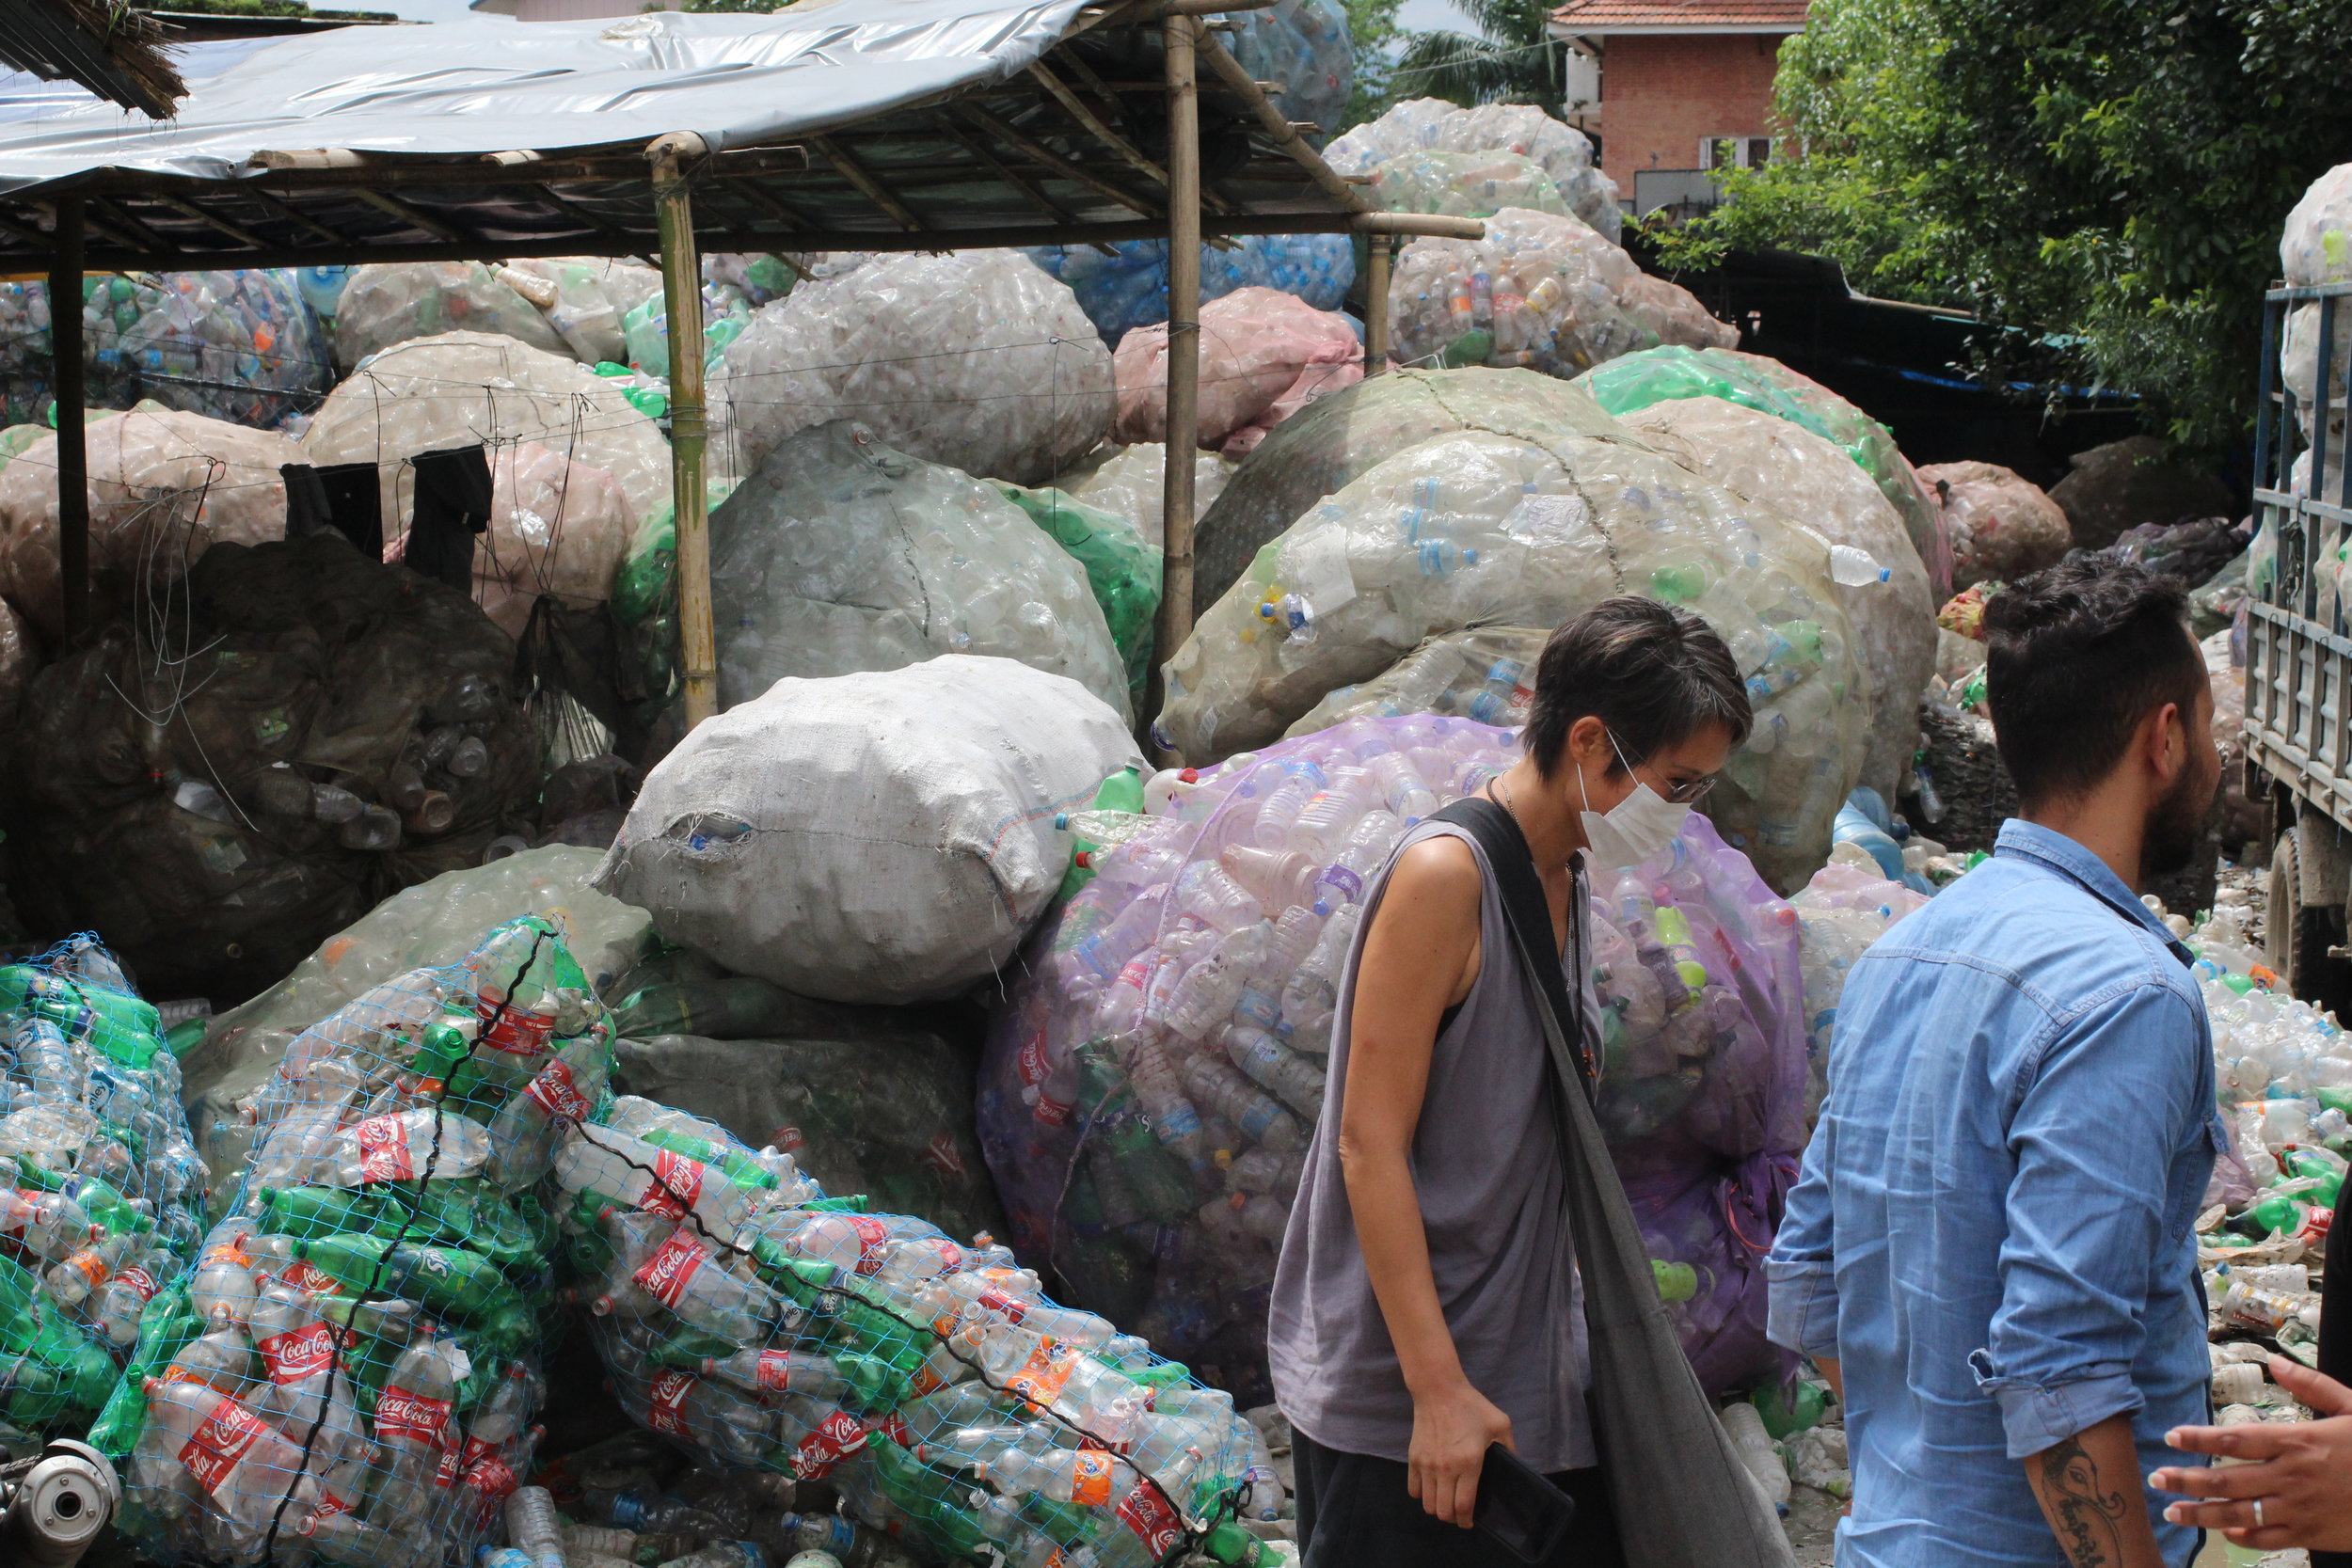 One of HCI's NGO program: Friends of the city, allows for plastic bottle collection by women workers to increase their ability to provide for their families